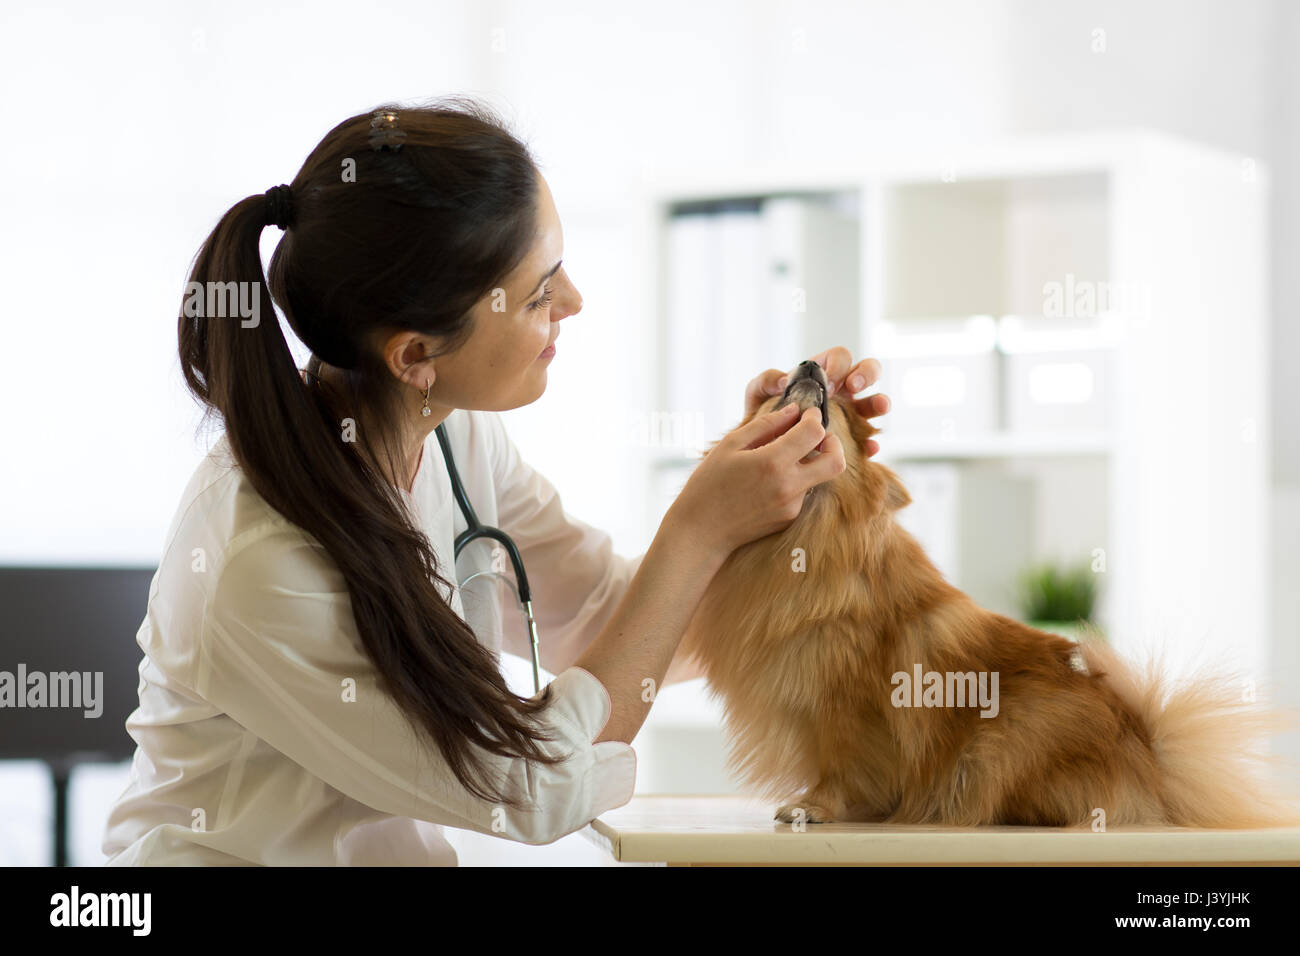 Female veterinarian examining teeth of dog in clinic - Stock Image